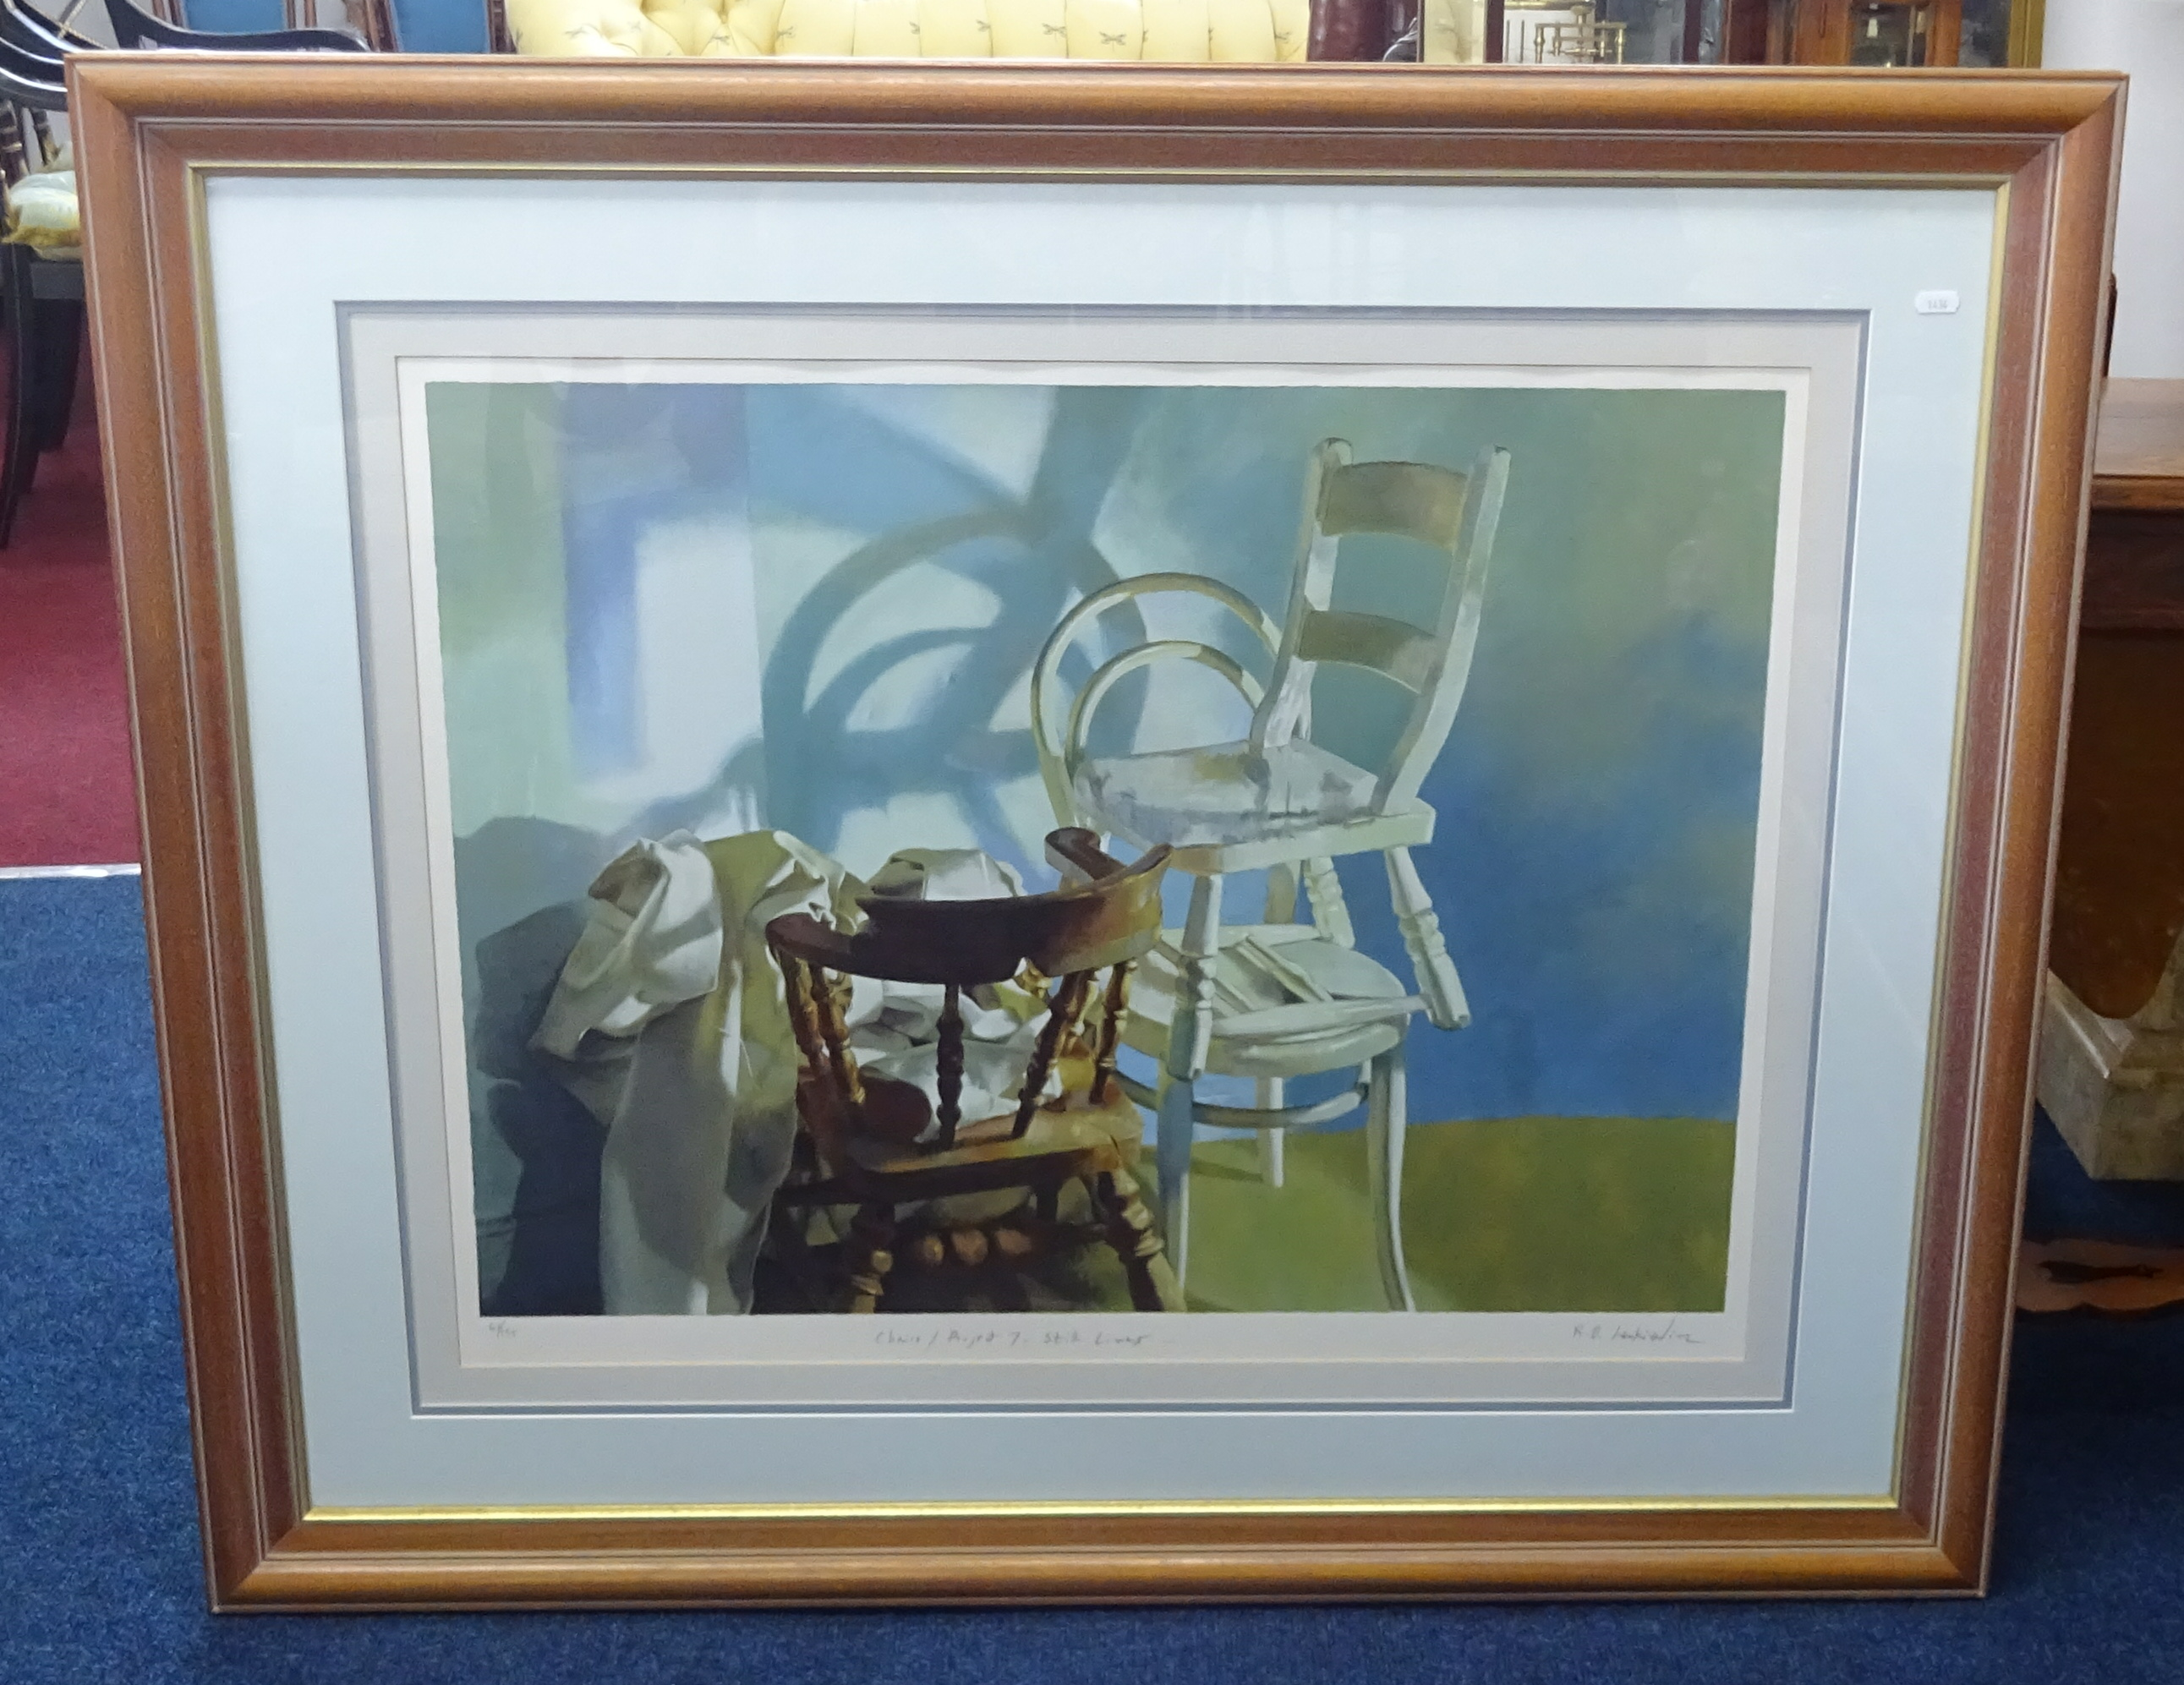 Lot 054 - Robert Lenkiewicz (1941-2002) 'Project 7 still lives chairs', signed limited edition silk screen